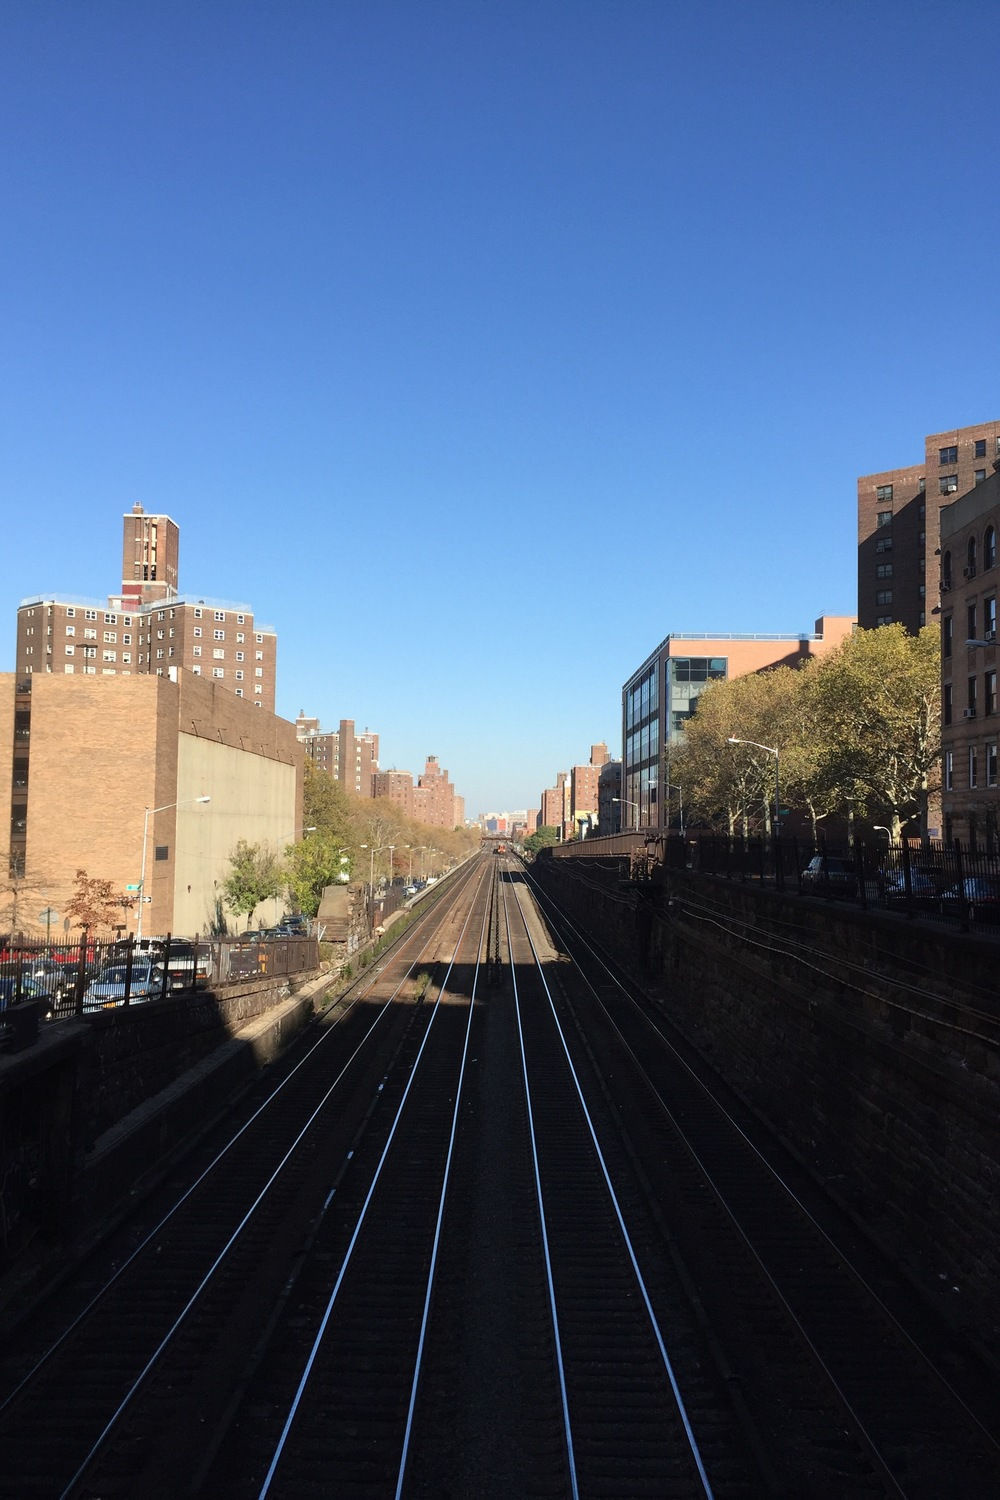 Looking north on 97th Street and Park avenue where the train tracks go underground at midday. A train approaches - November 16, 2015